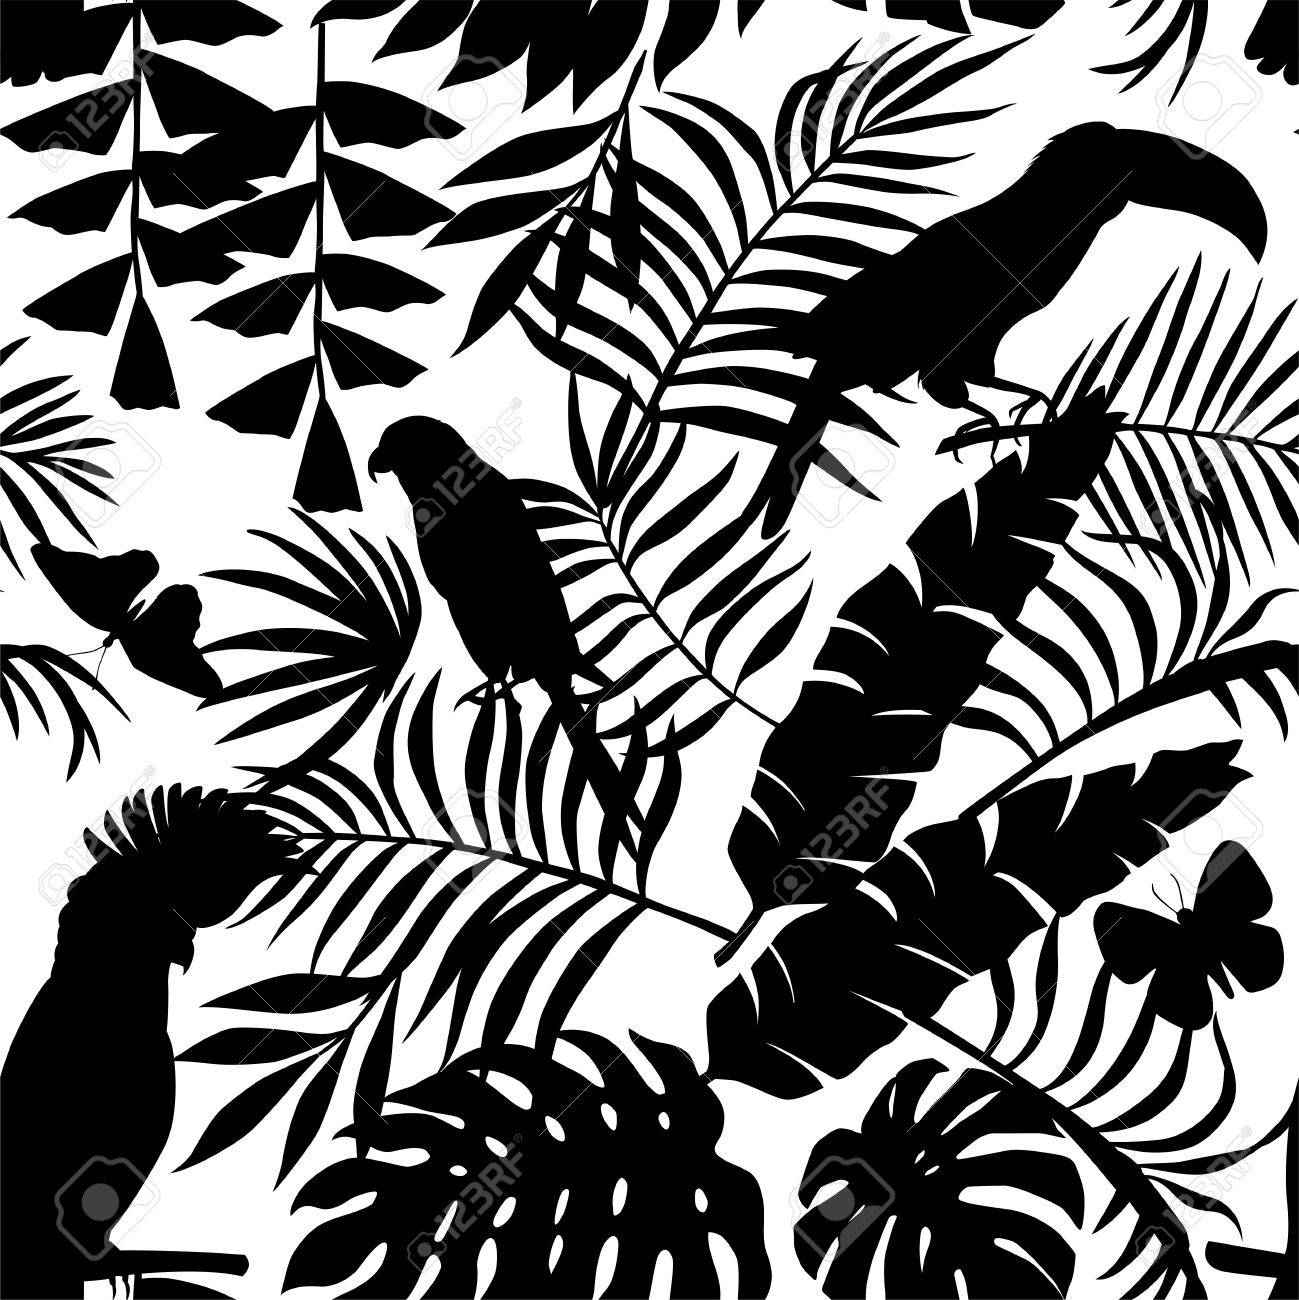 1299x1300 Exclusive Silhouette Paradise Tropic Jungle Of Plants And Birds